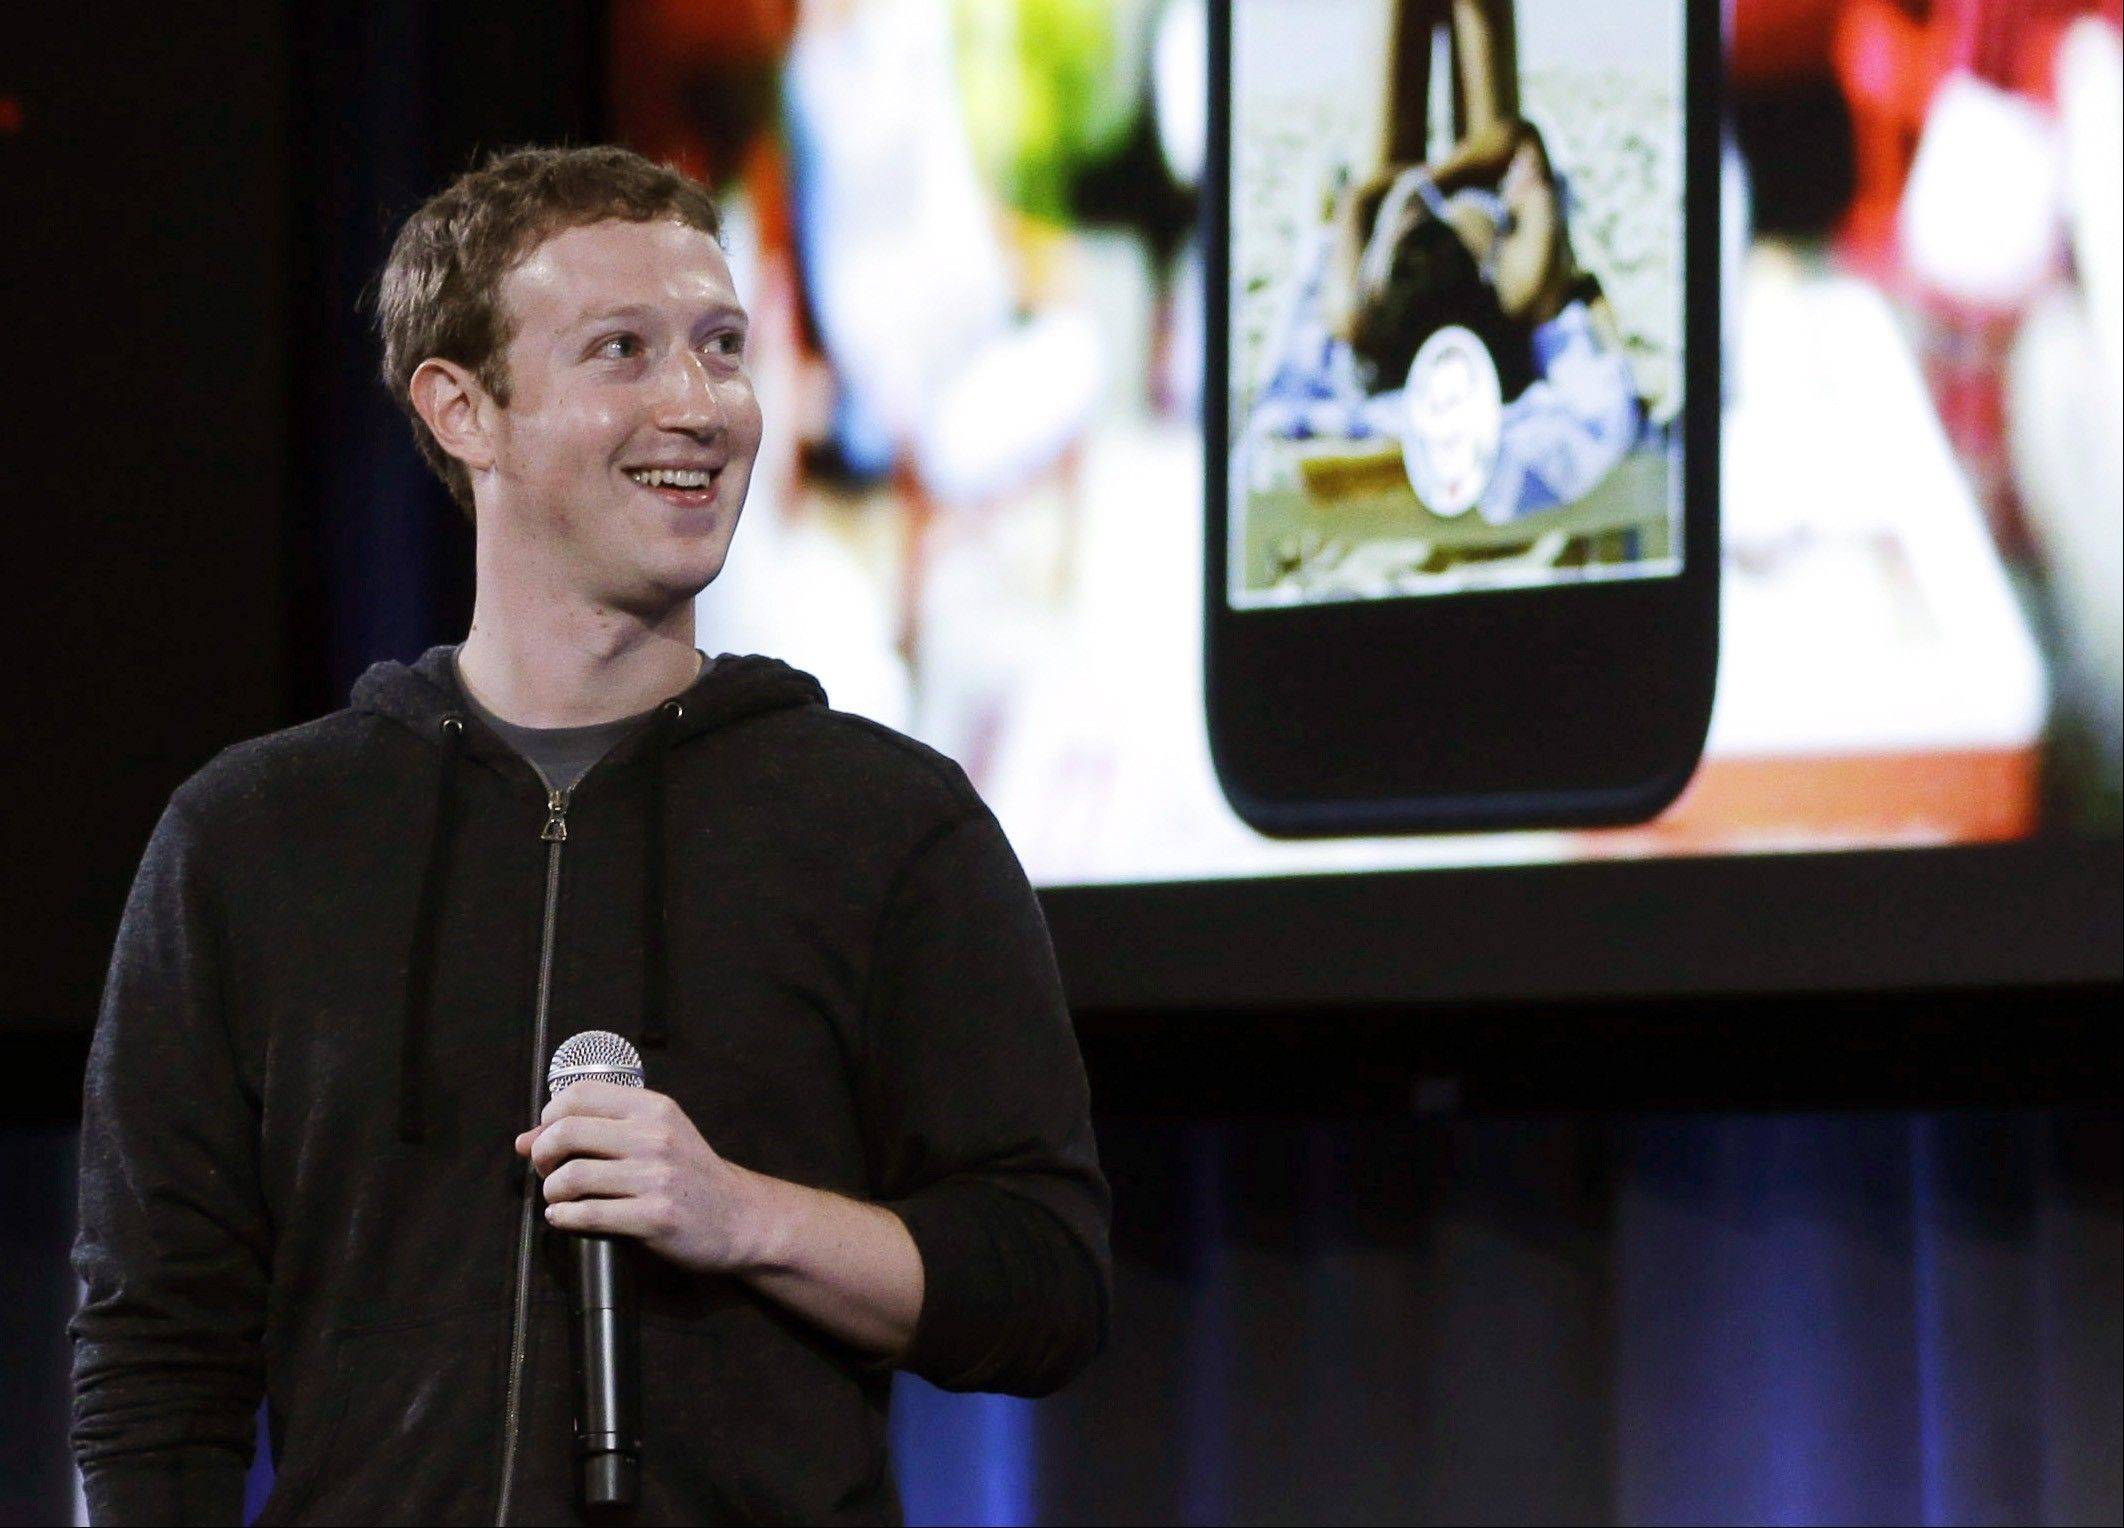 CEO Mark Zuckerberg said Thursday that Facebook is introducing a new experience for Android phones. The idea behind the new Home service is to bring content right to the user, rather than require people to check apps on the device.